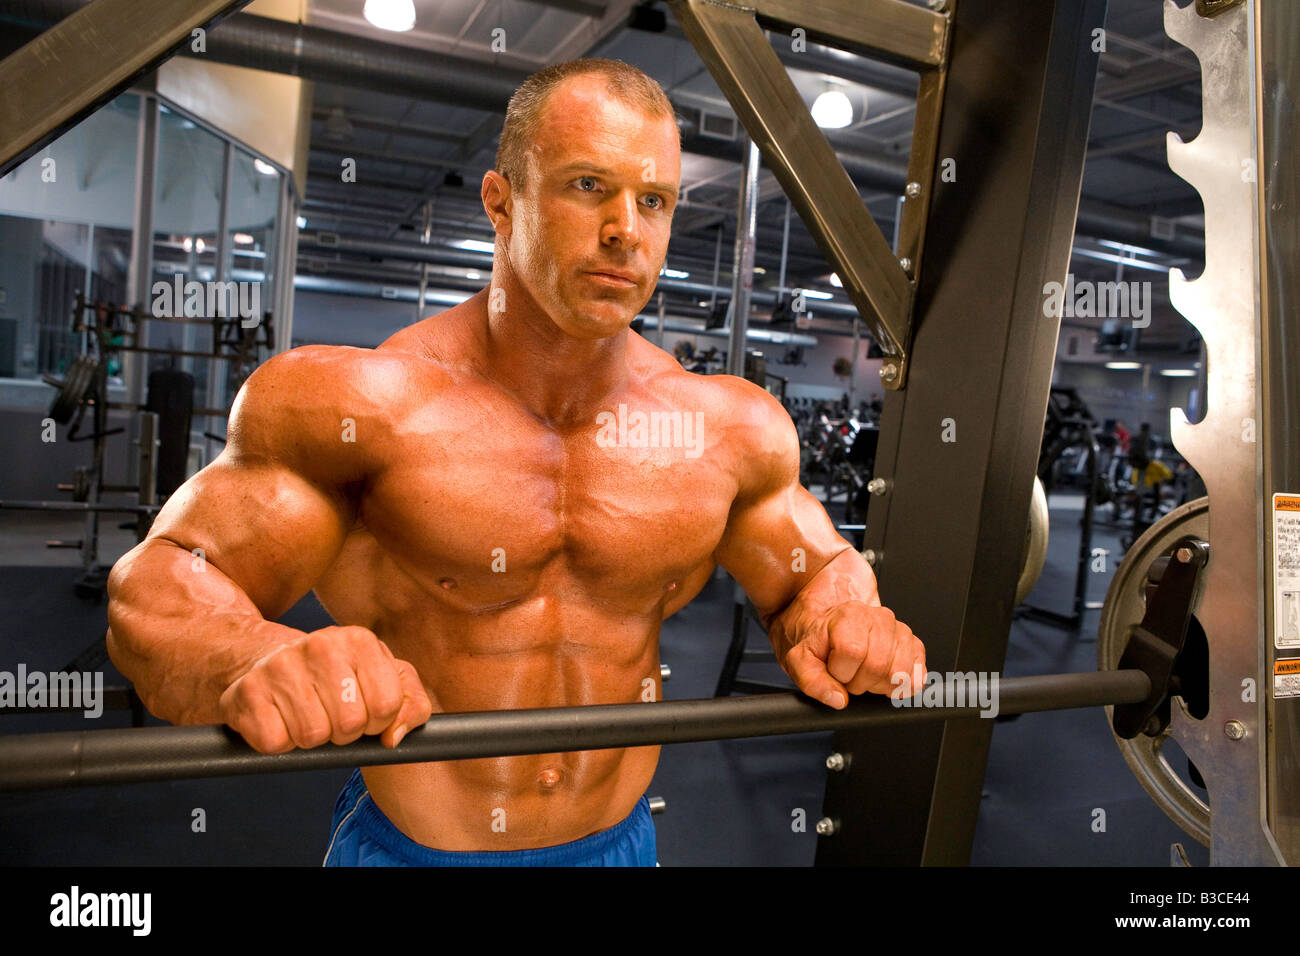 List of Synonyms and Antonyms of the Word: steroid arms